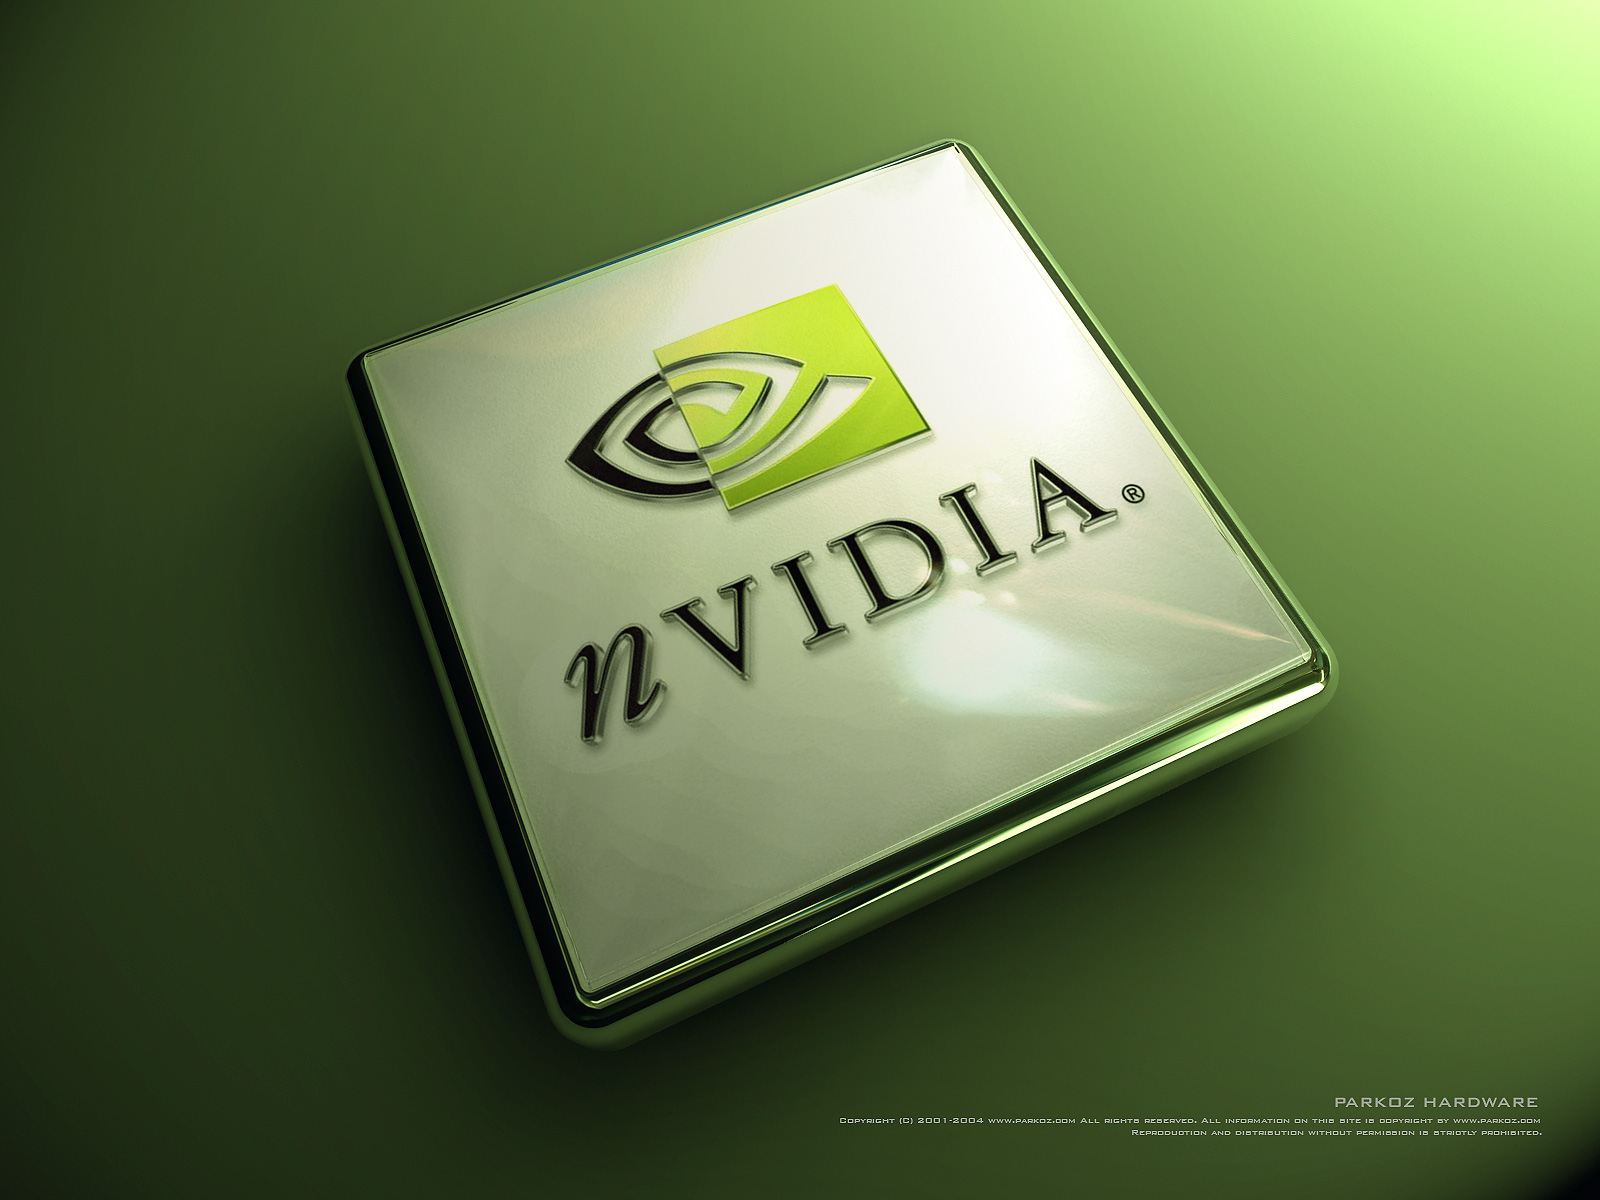 verde-nvidia-wallpapers_3861_1600